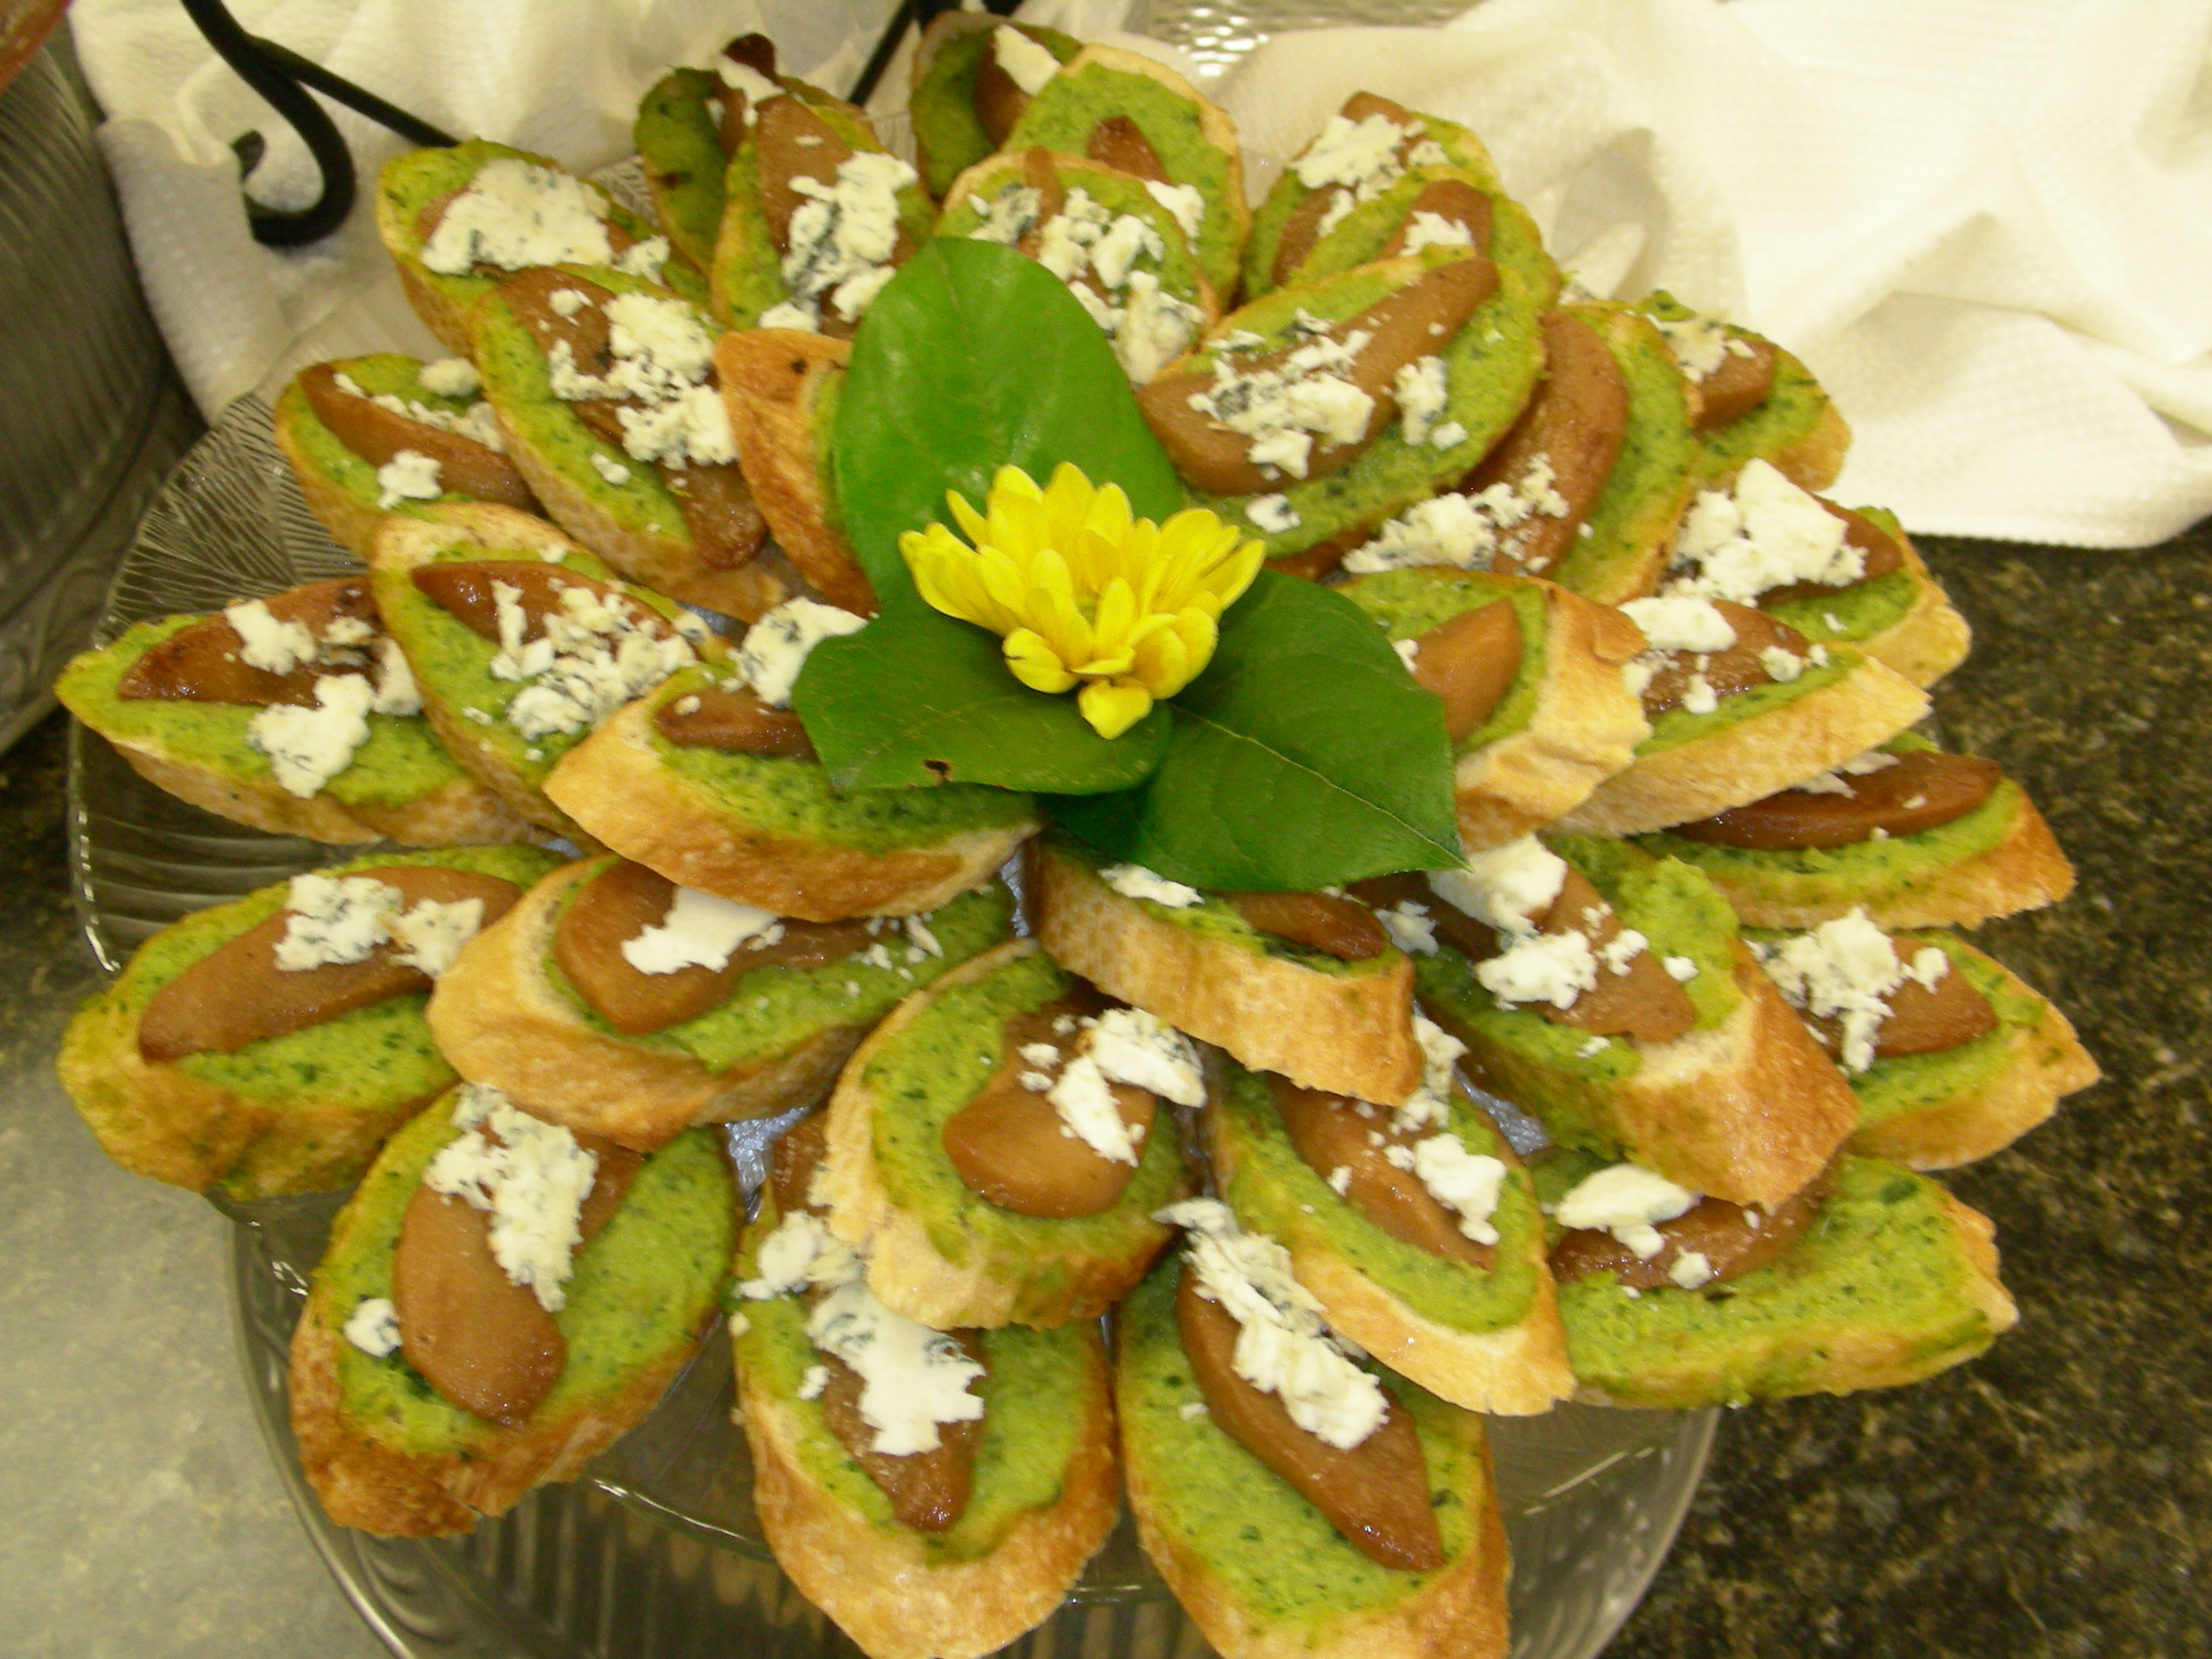 Fichier:Pesto, spiced pear and bue cheese crostini.jpg — Wikipédia